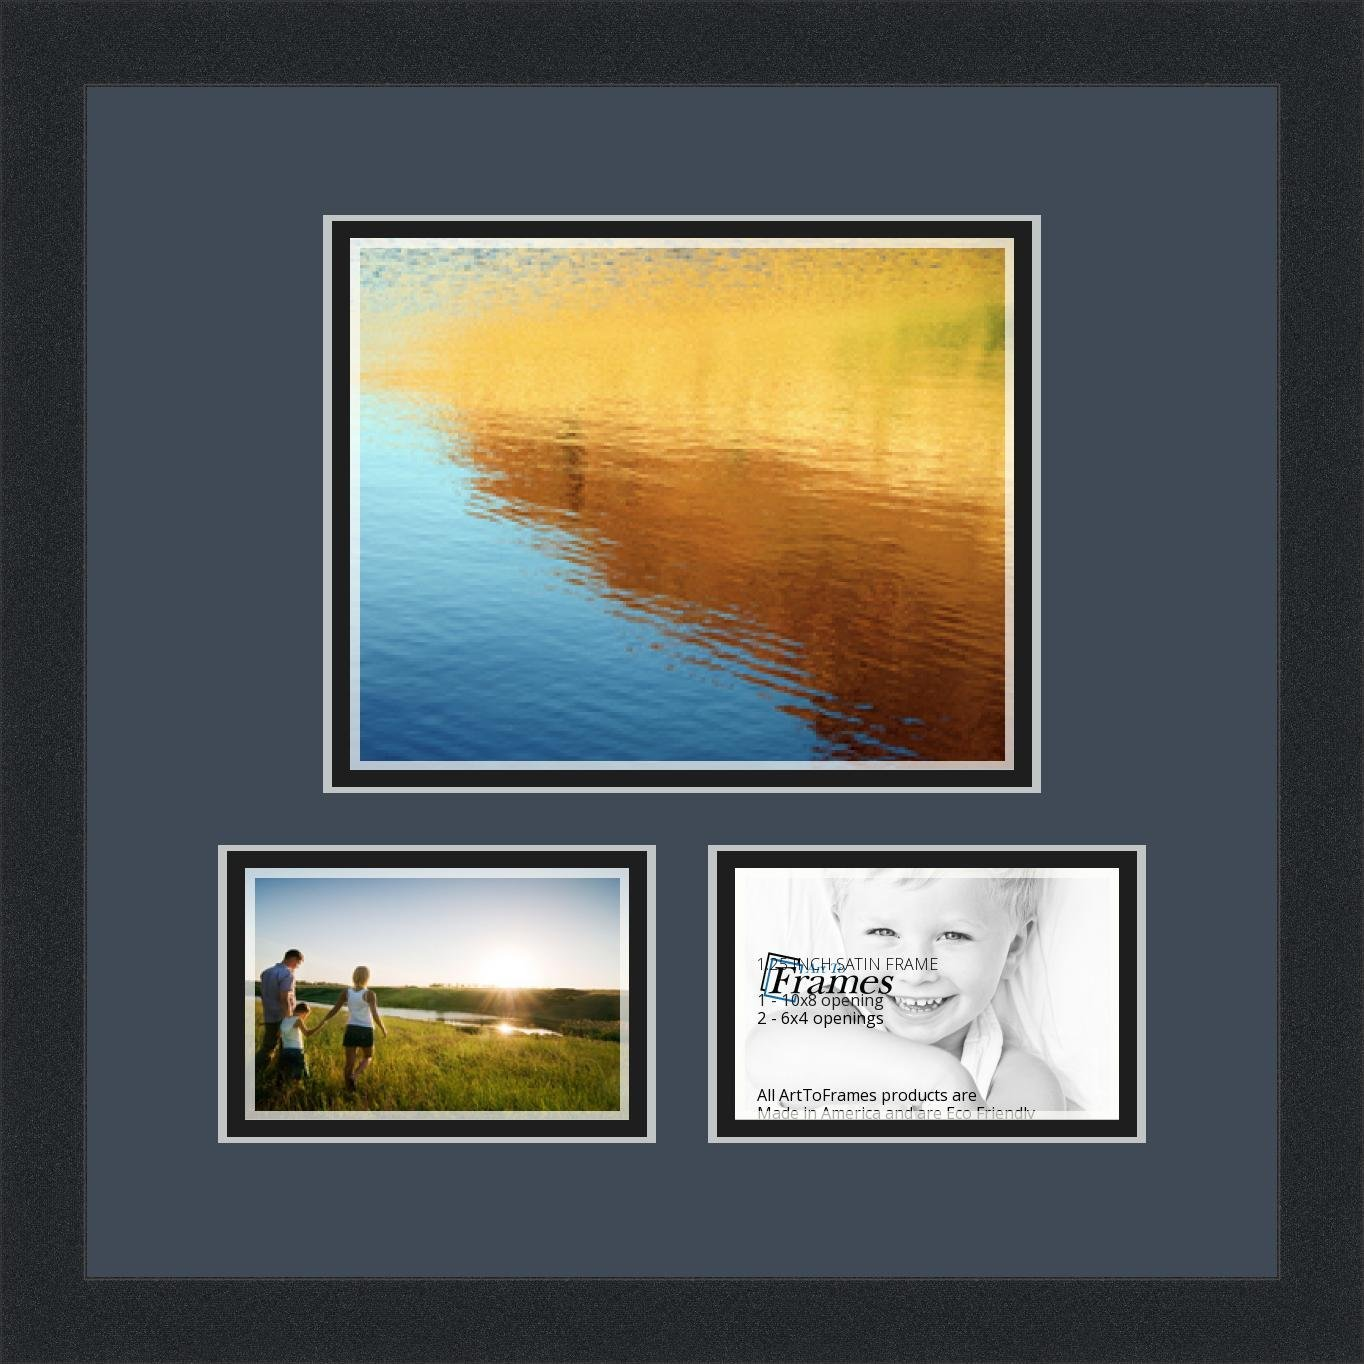 Buy Art To Frames Double Multimat 1329 58689 Frbw26079 Collage